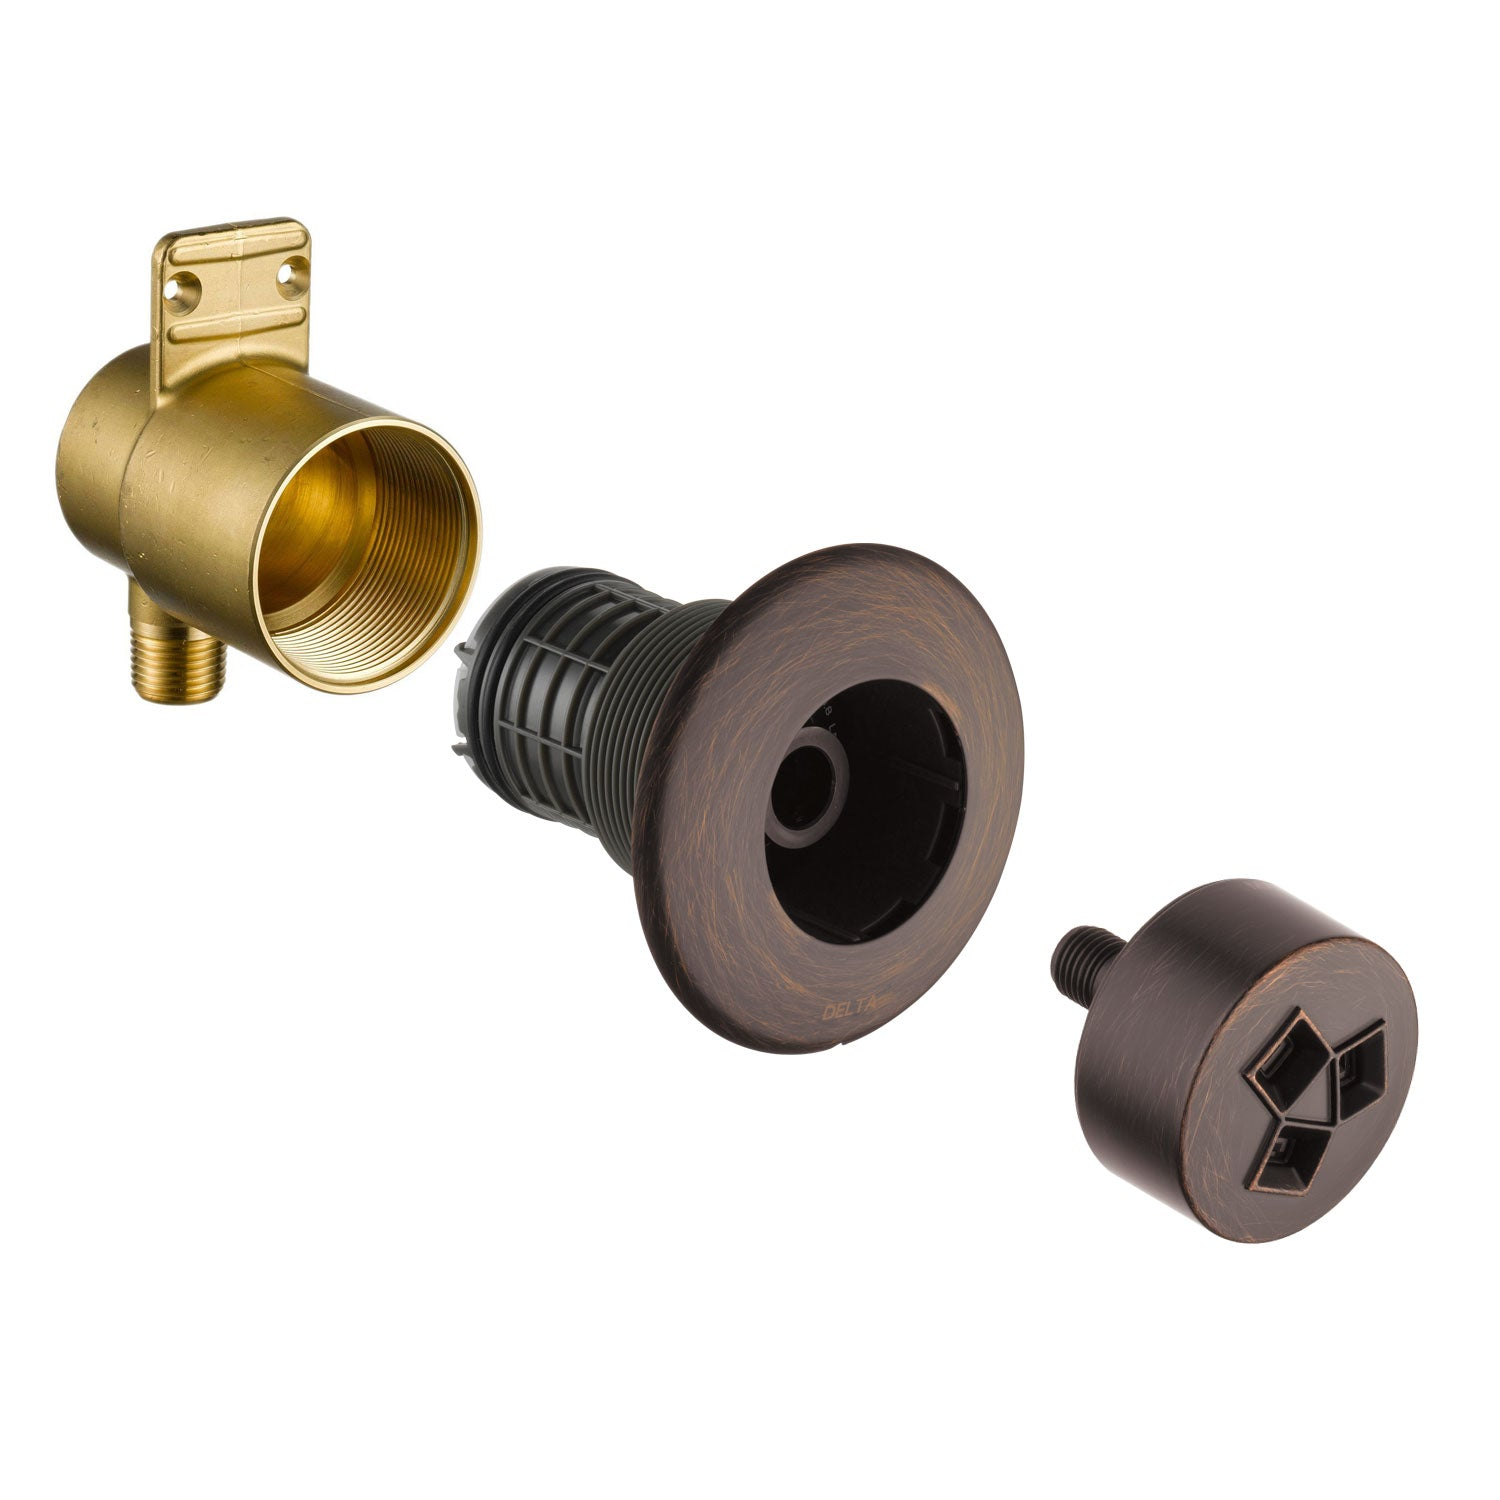 Delta Venetian Bronze Finish HydraChoice Invigorating H2Okinetic Round Shower System Body Spray COMPLETE Includes Valve, Trim, and Spray D1375V